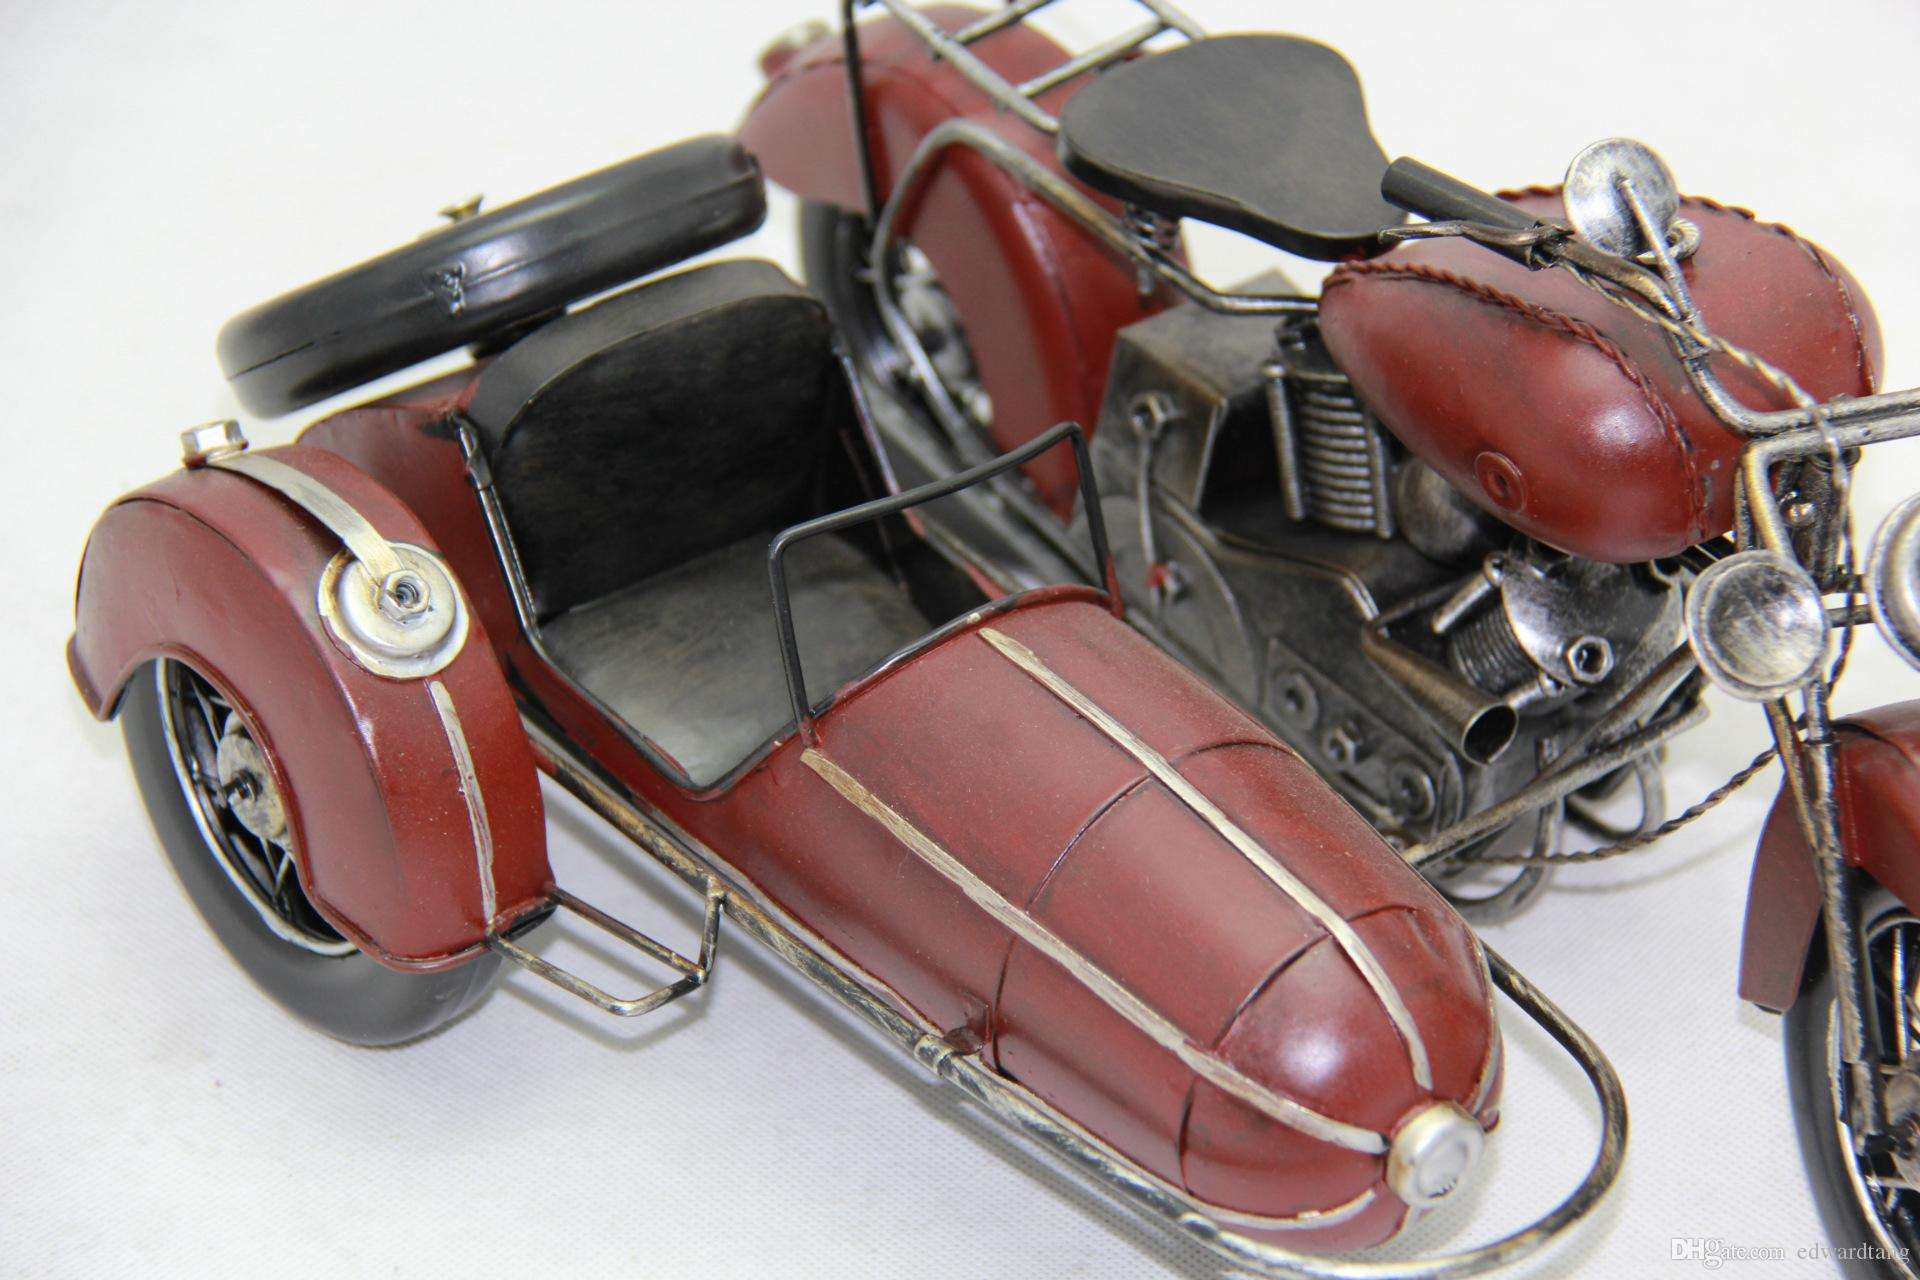 Tinplate Military Motorcycle Model, Hand-made Motor Tricycle Toy, Furniture Decoration, Work of Art , Personalized for Gift, Collecting